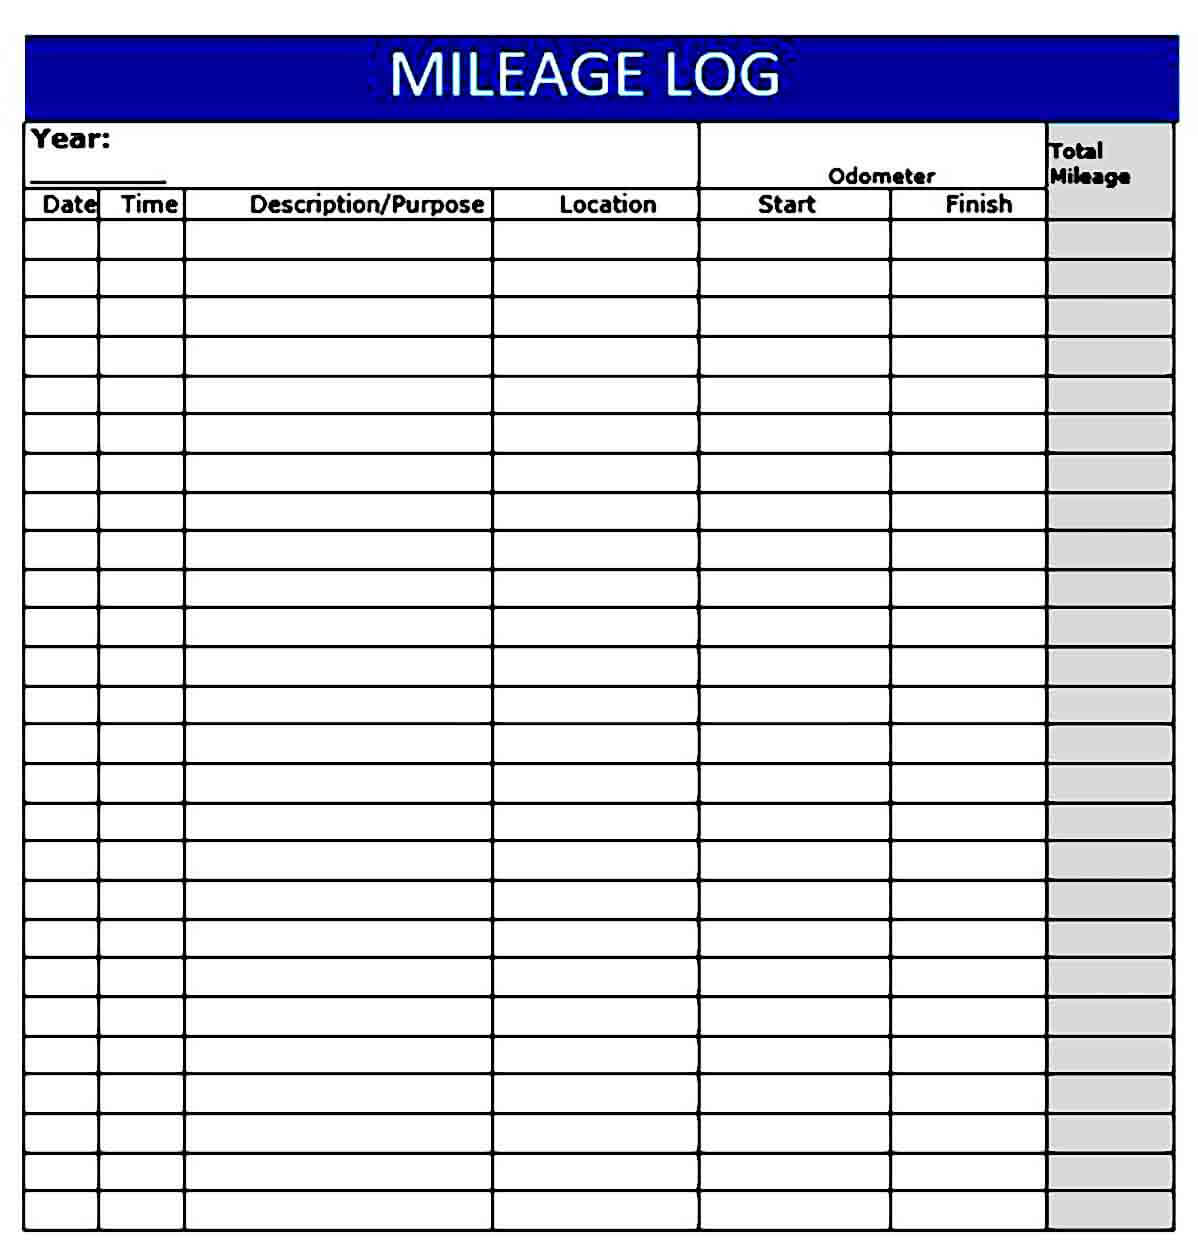 Mileage Log templates